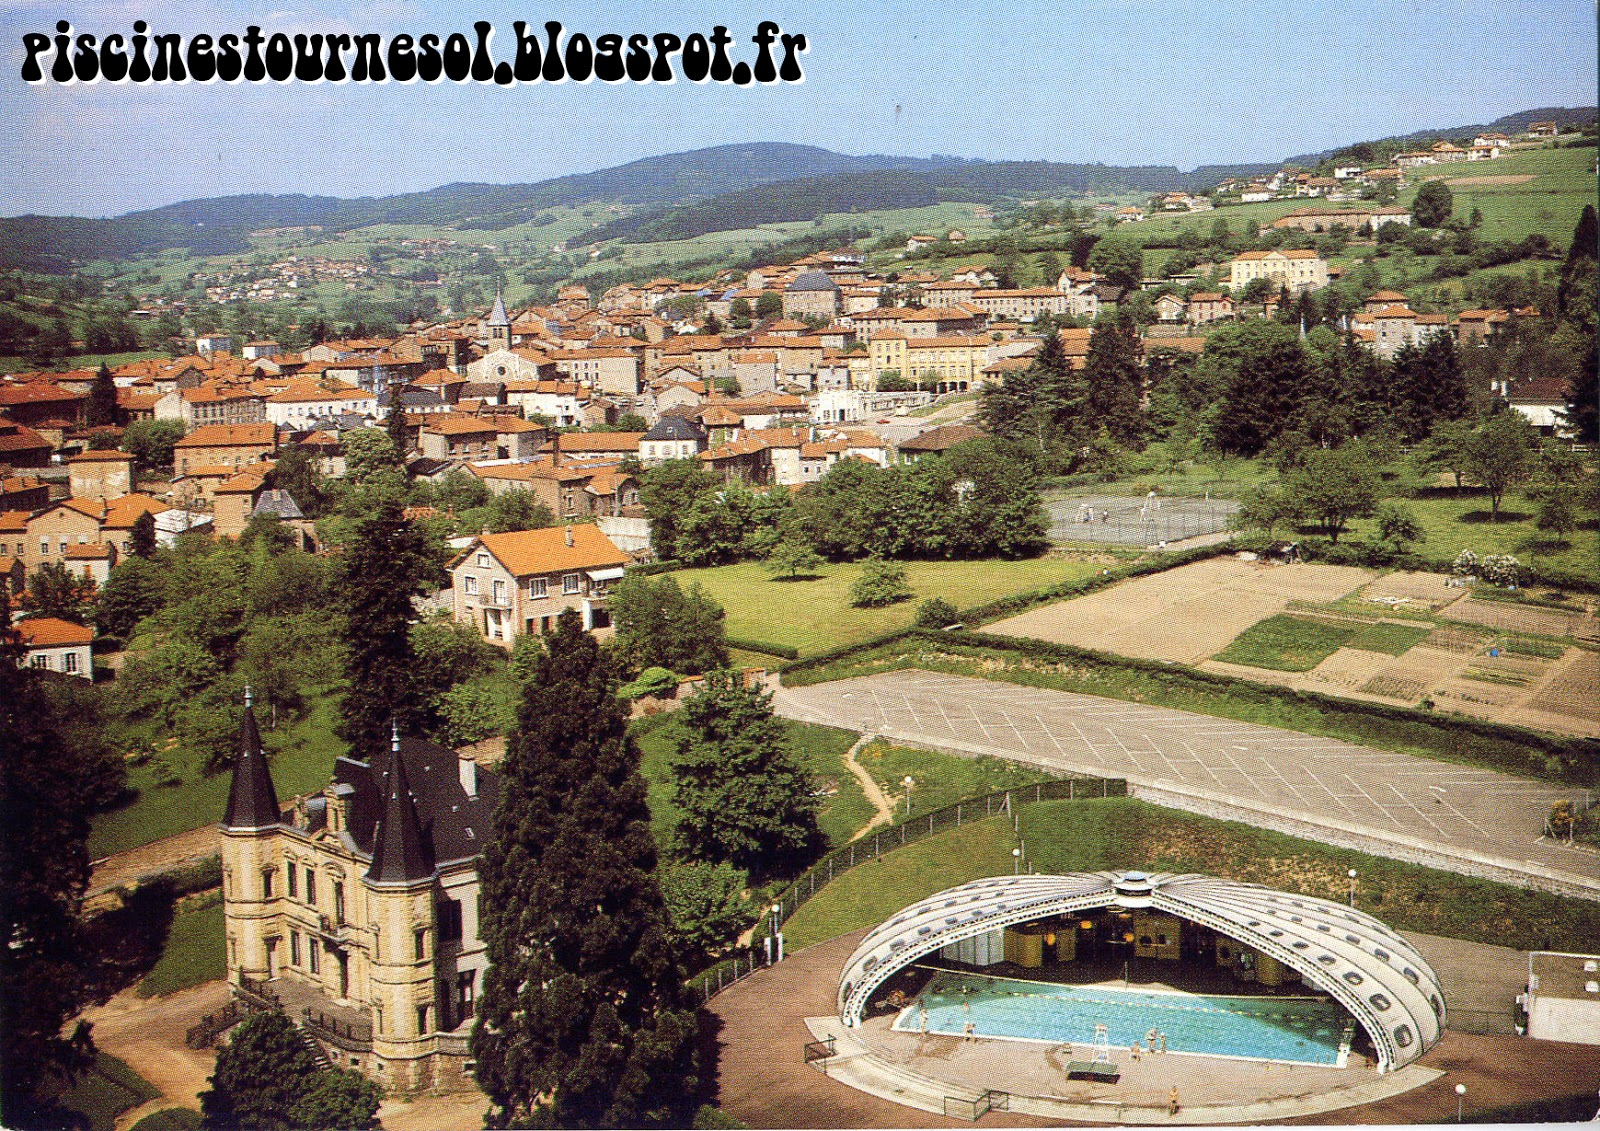 piscines tournesol piscine tournesol cours la ville